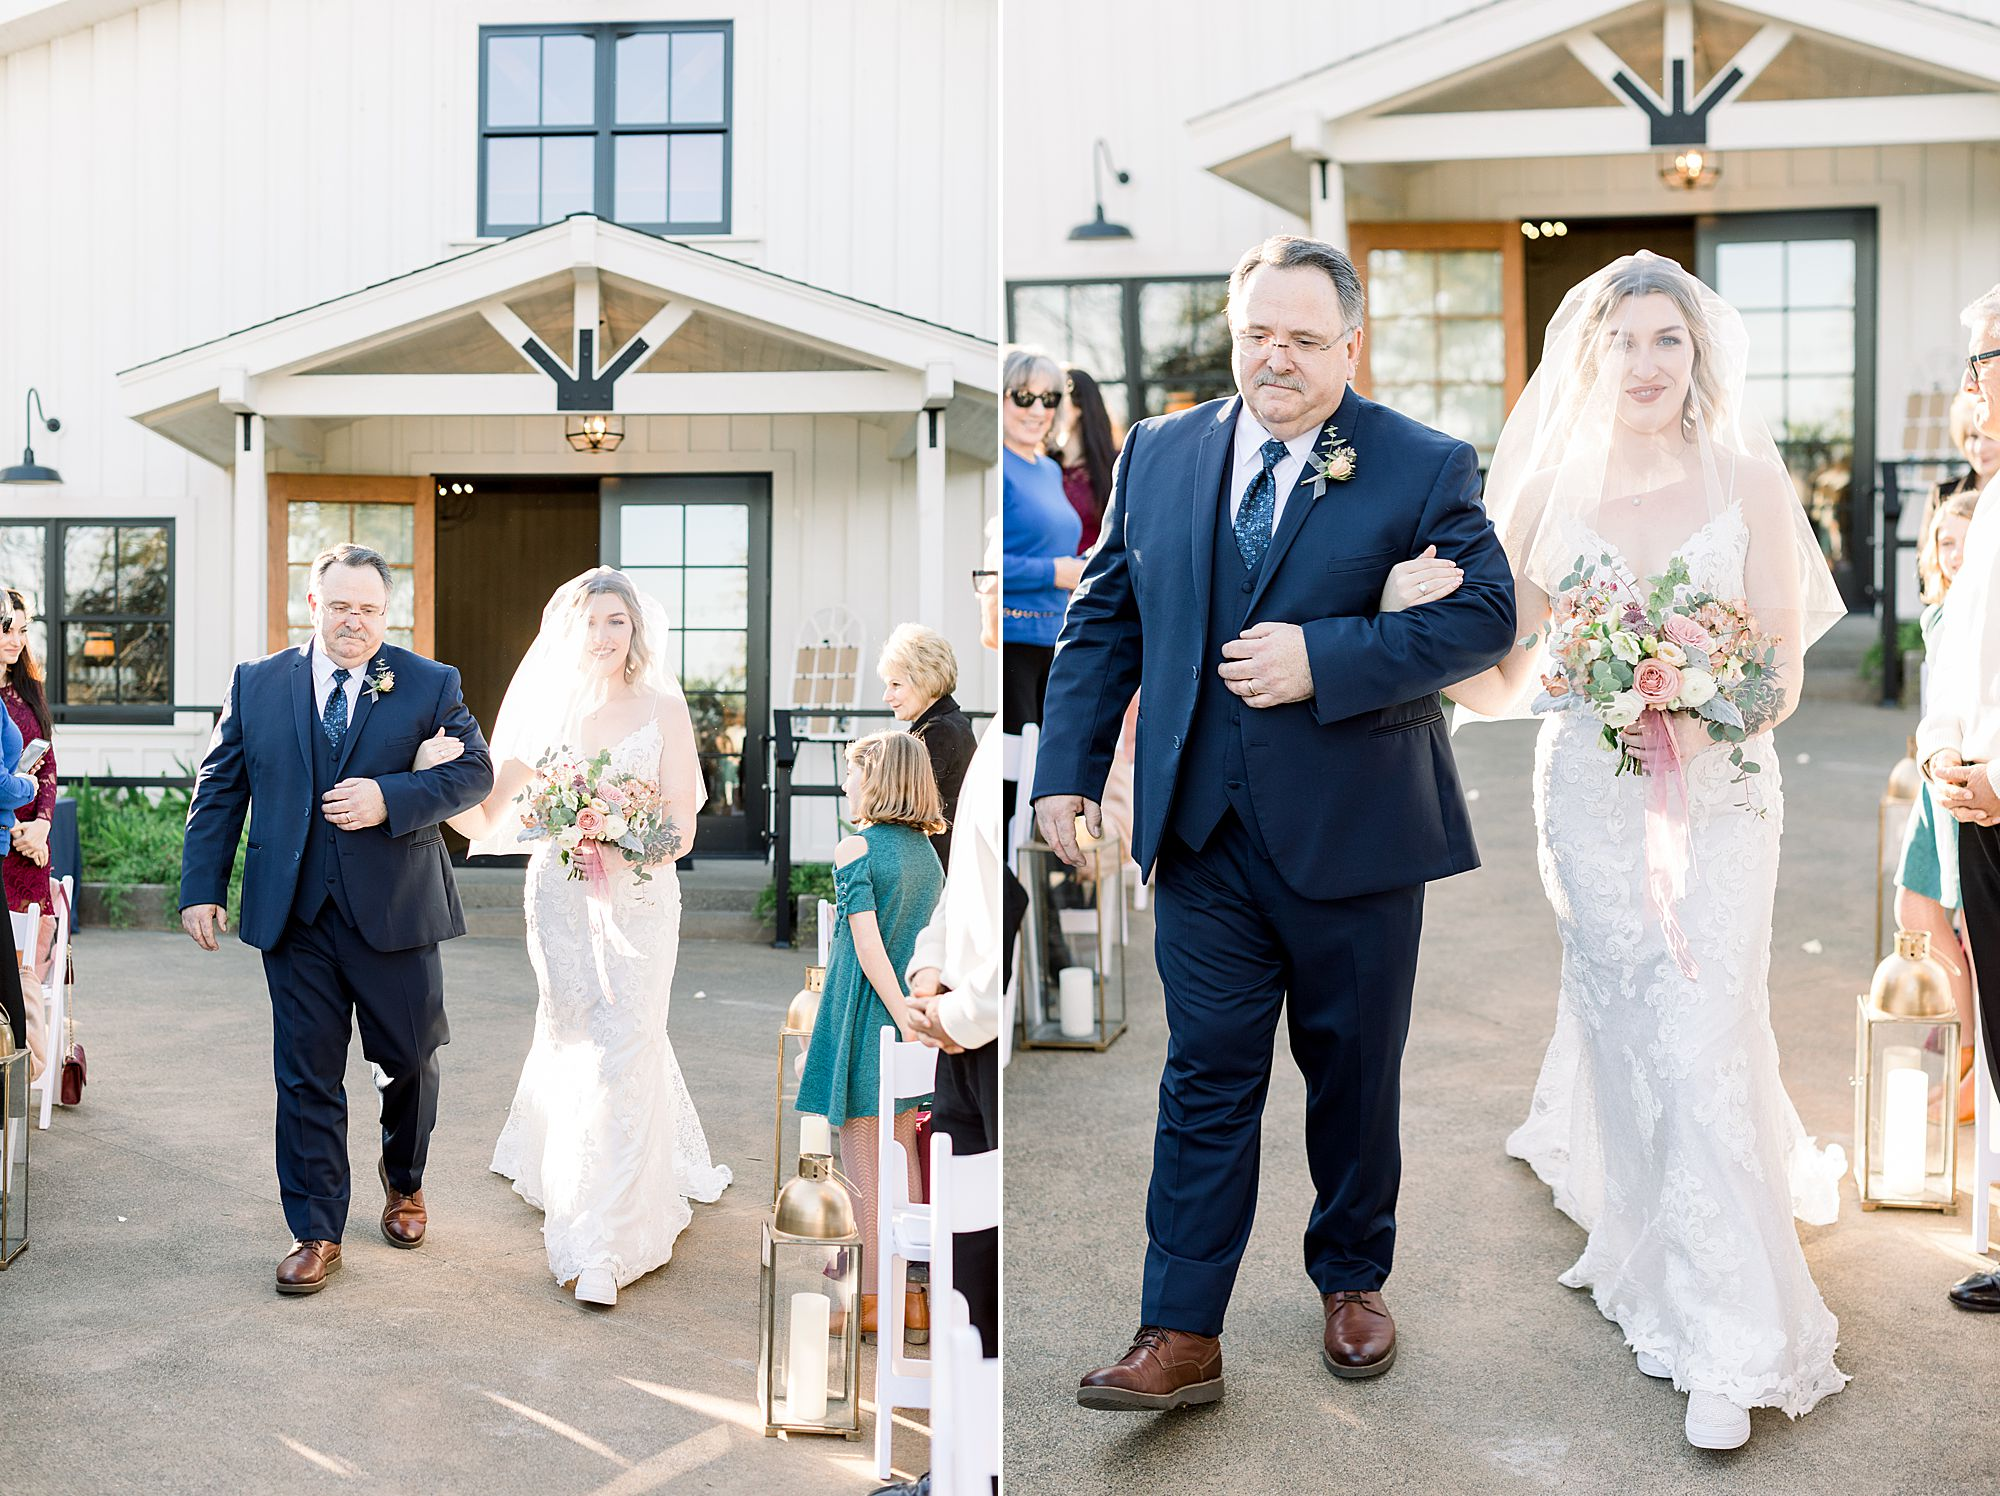 Inn at Park Winters Wedding - Lindsay and Shane - Ashley Baumgartner - Park Winters Wedding Photographer - Sacramento Wedding Photographer_0052.jpg